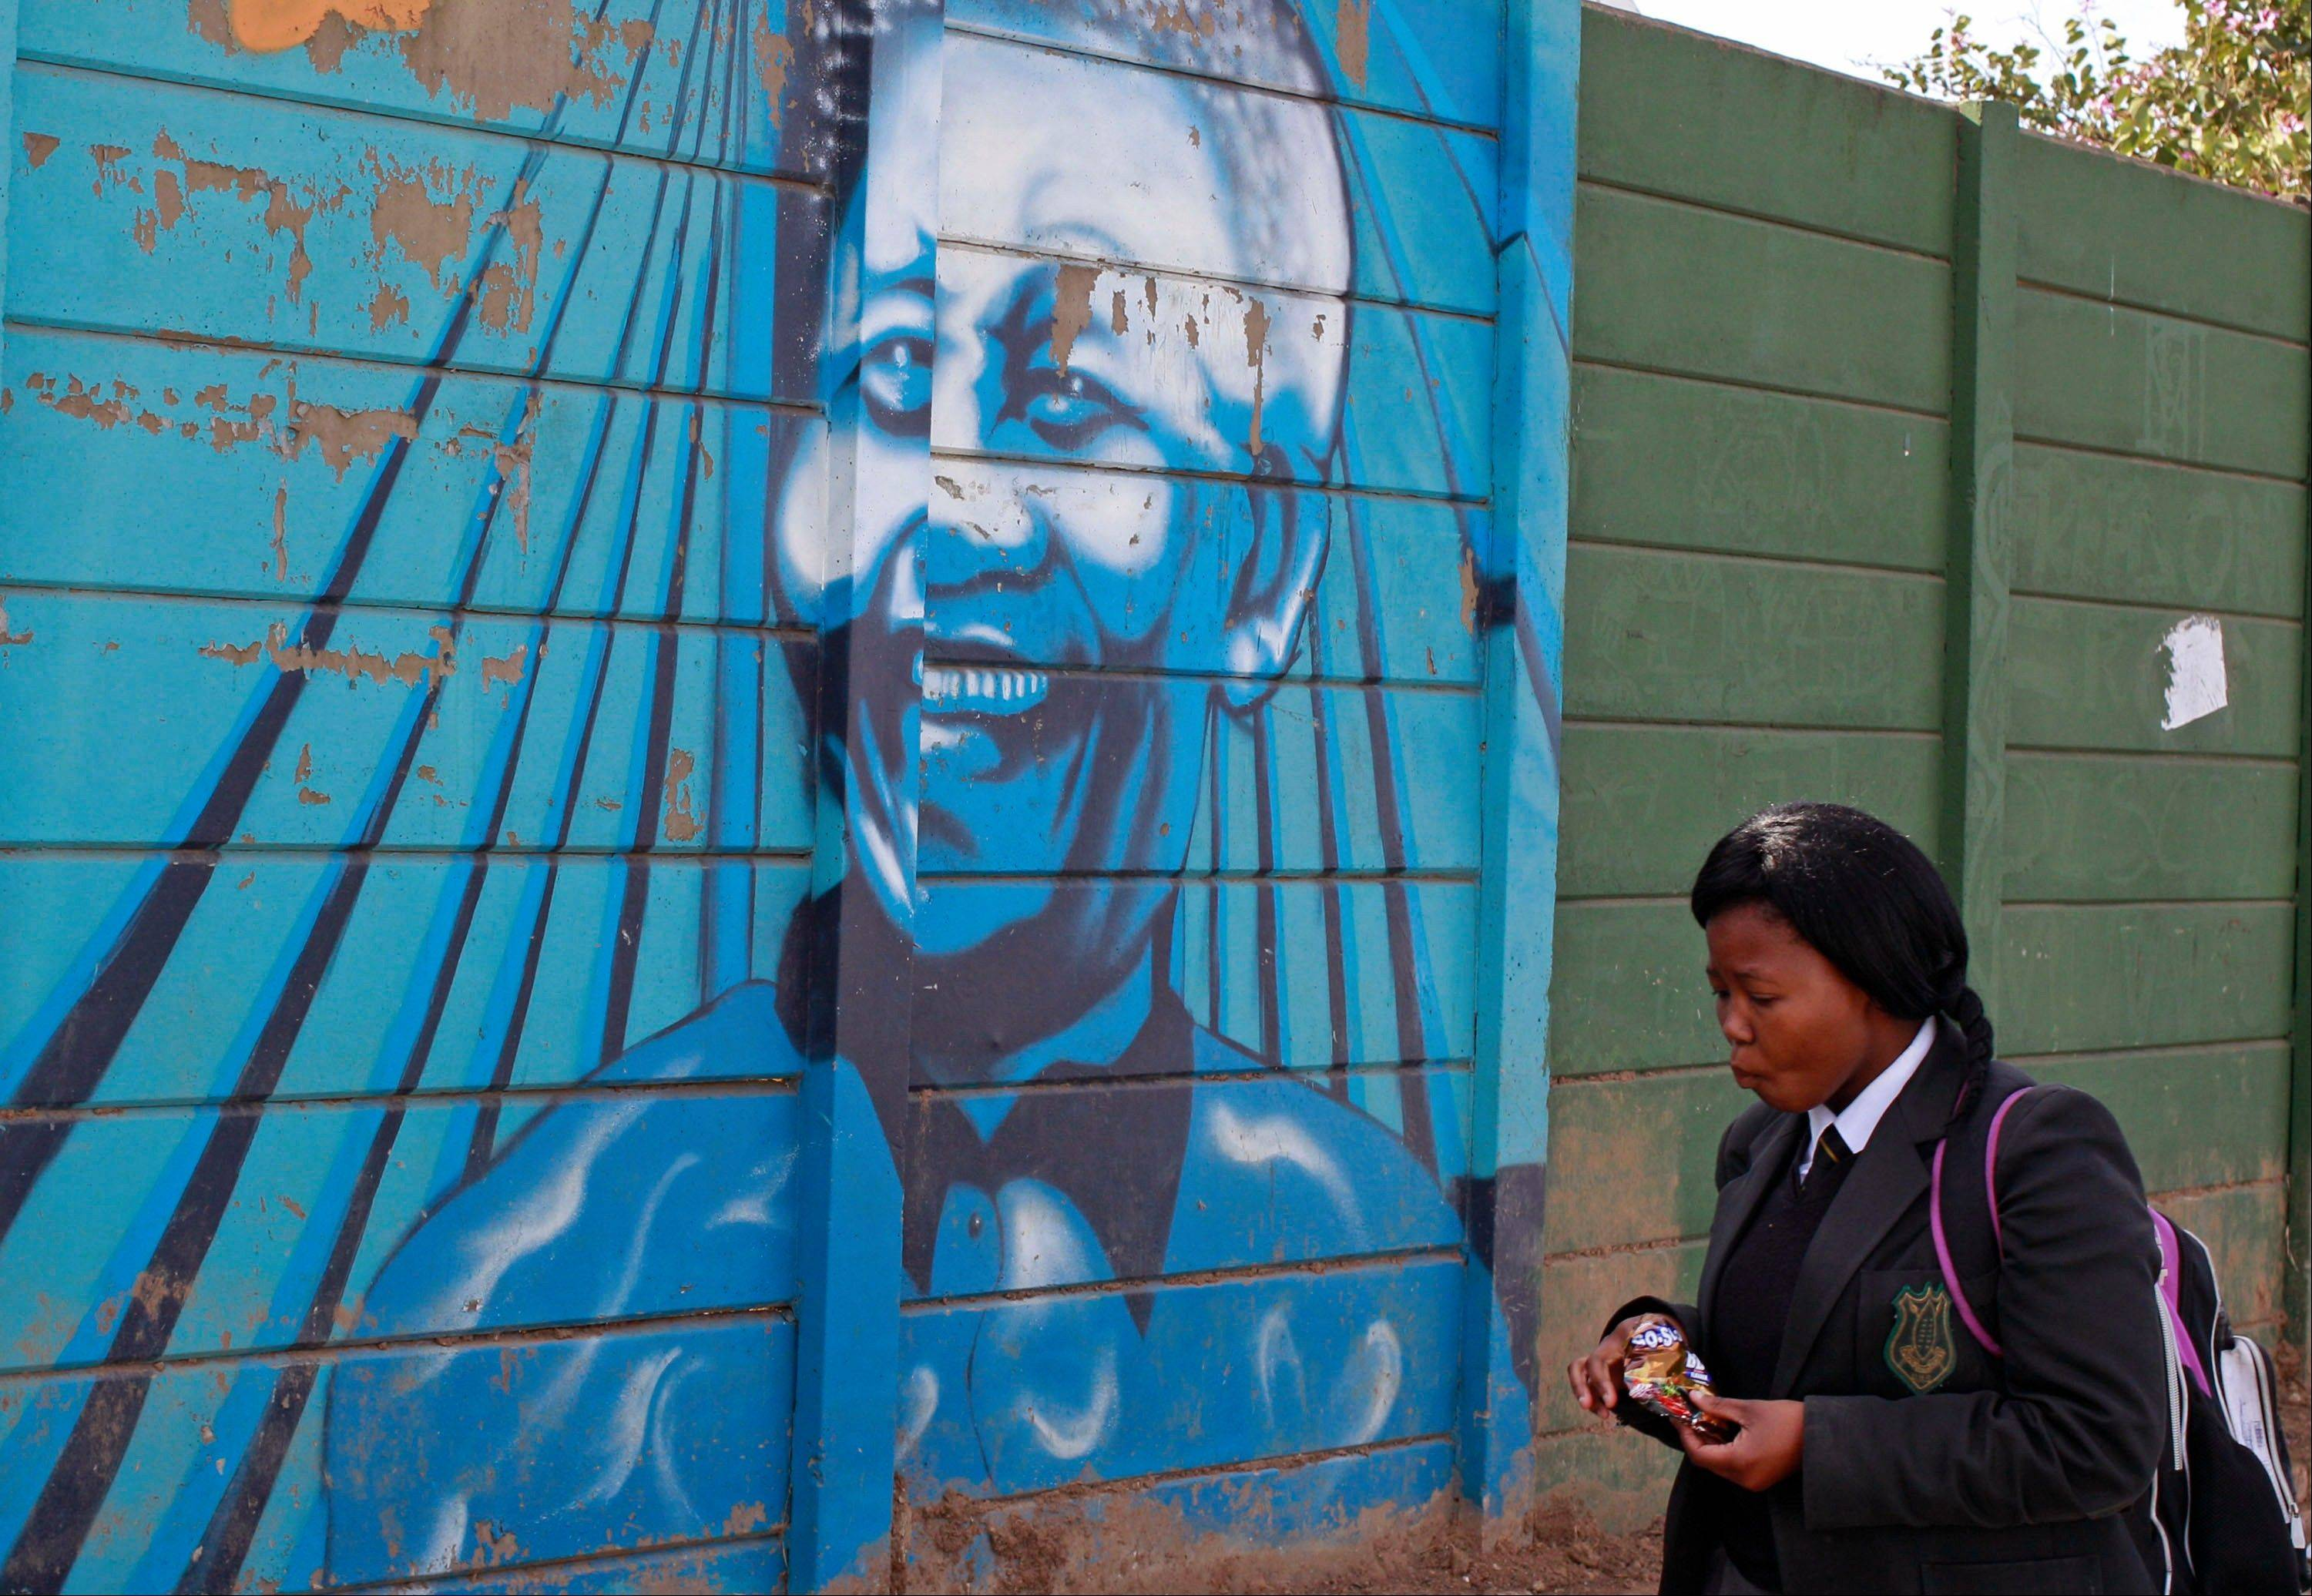 A schoolgirl walk past a mural of former South African President Nelson Mandela in the town of Umtata, South Africa, Friday, June 28, 2013. Members of Nelson Mandela's family as well as South African Cabinet ministers have visited the hospital where the 94-year-old former president is critically ill.